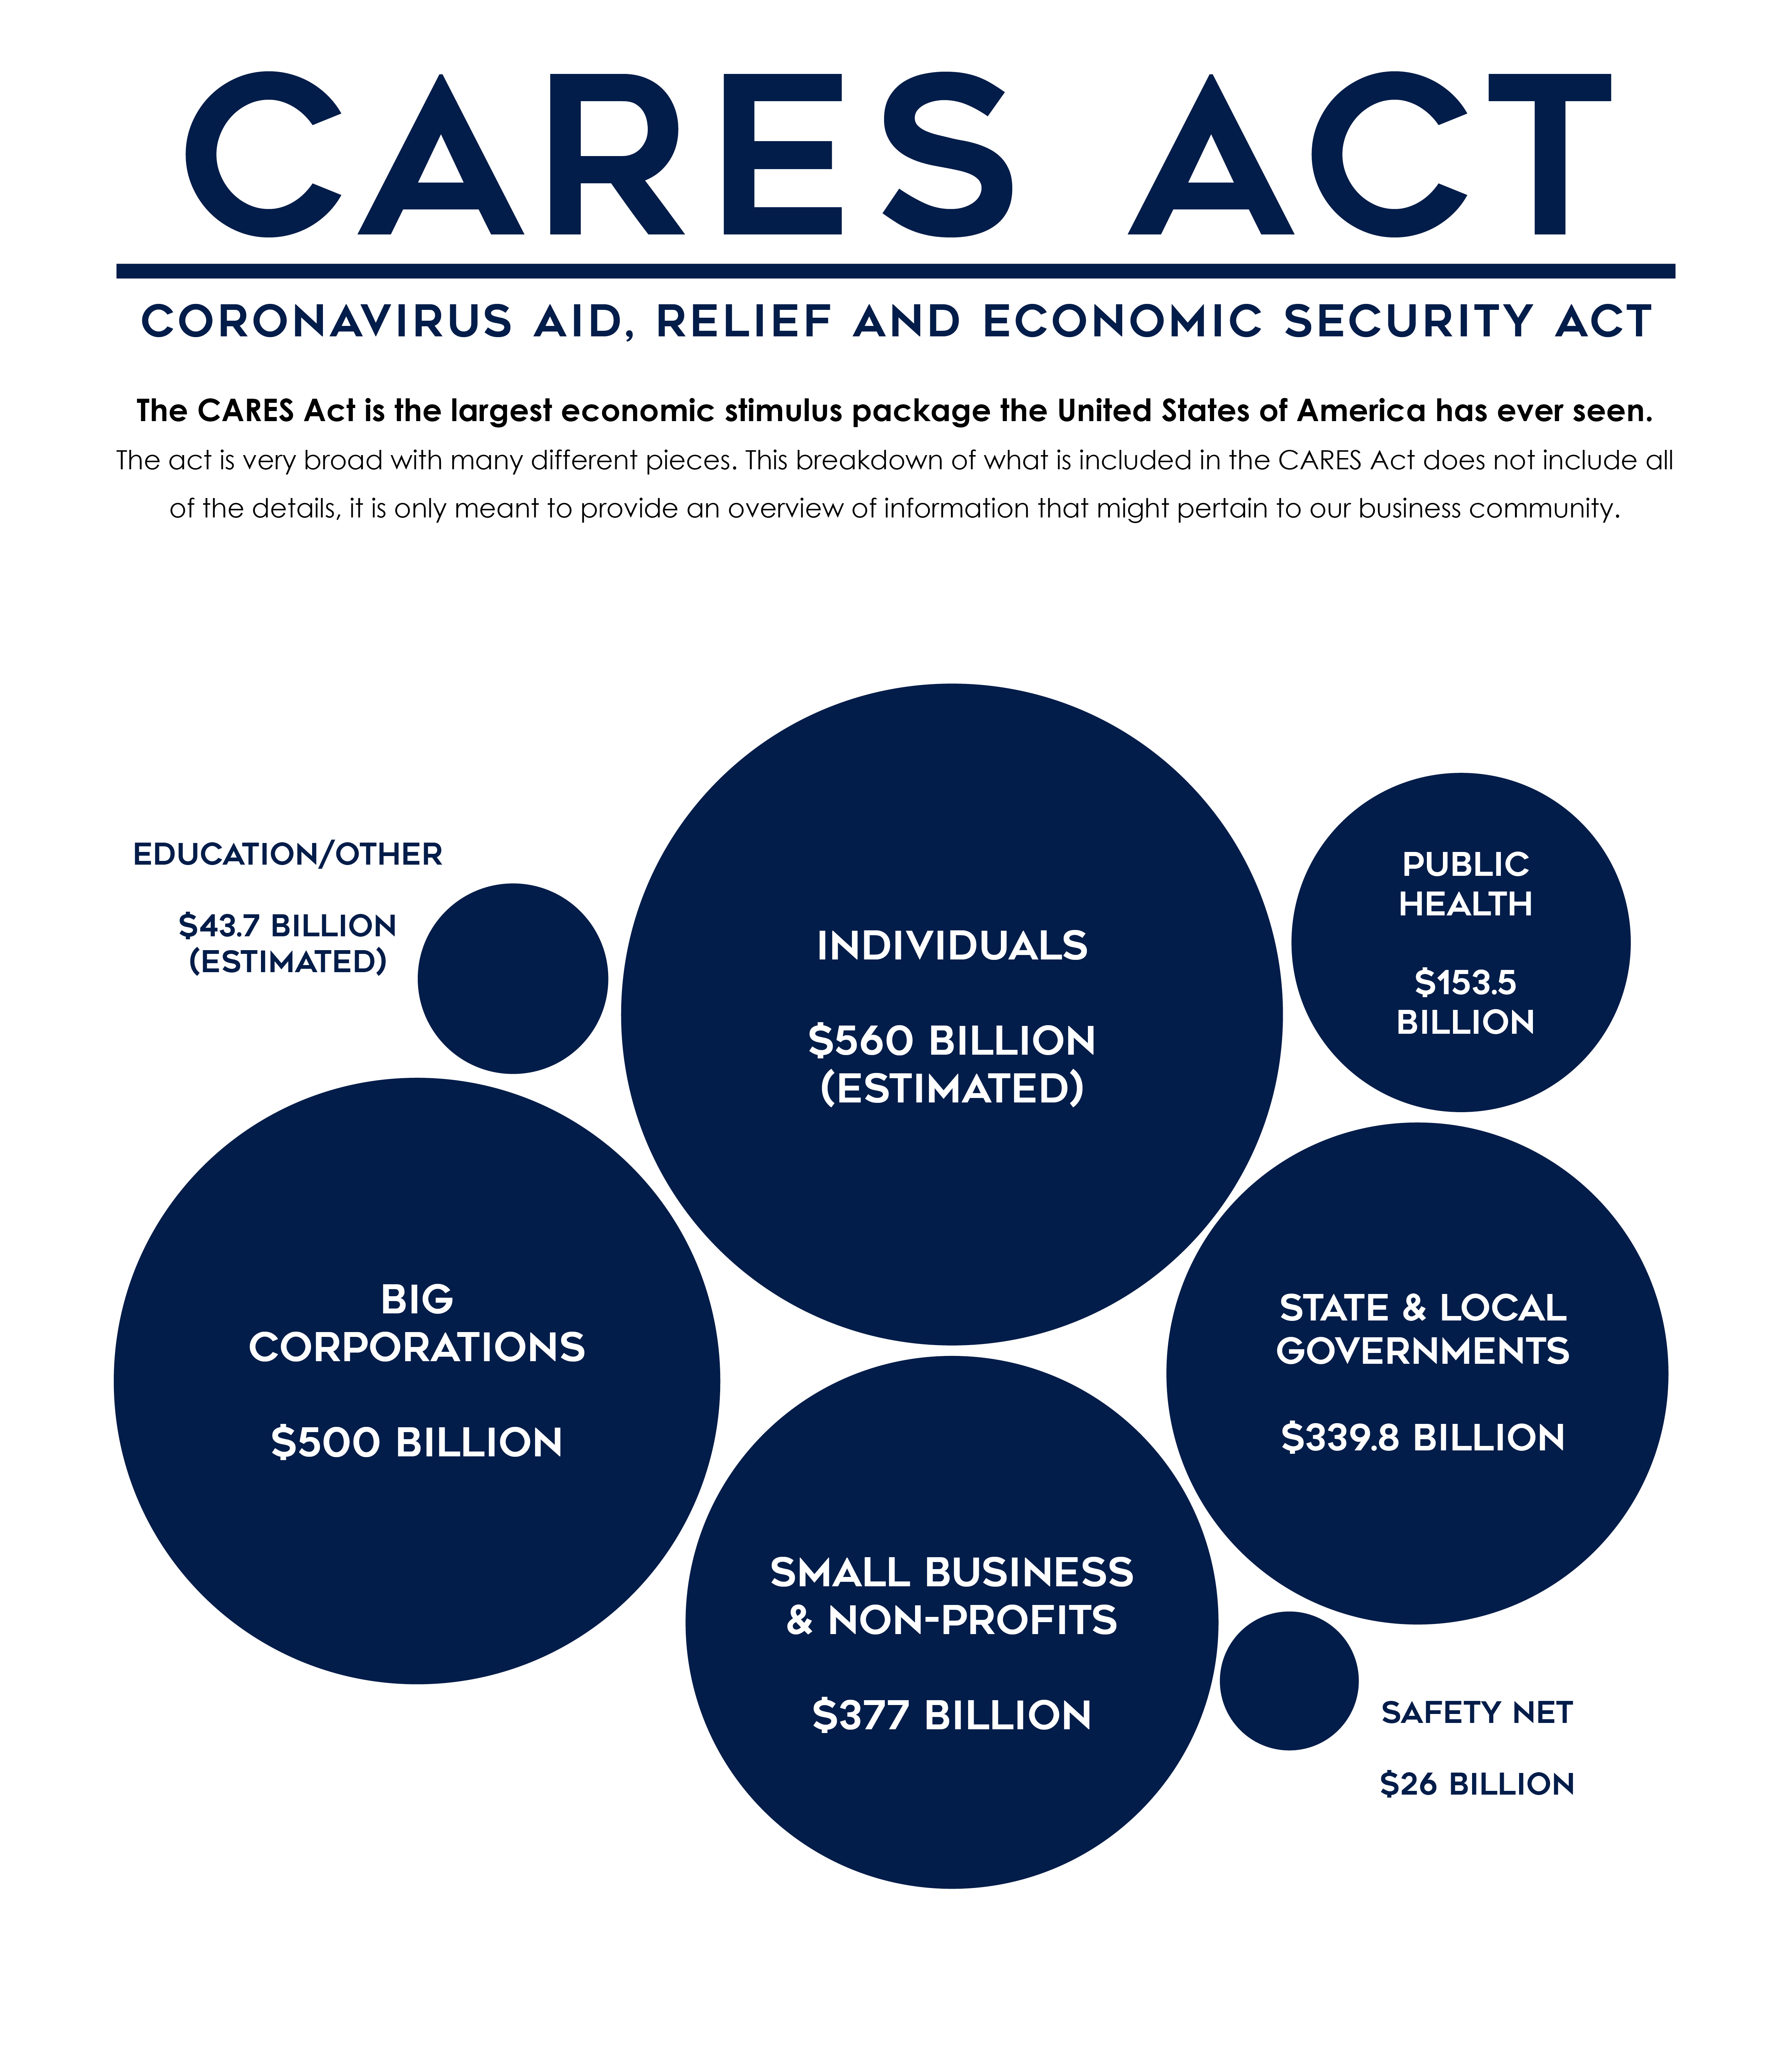 CARES-Act-Breakdown-w1200.jpg